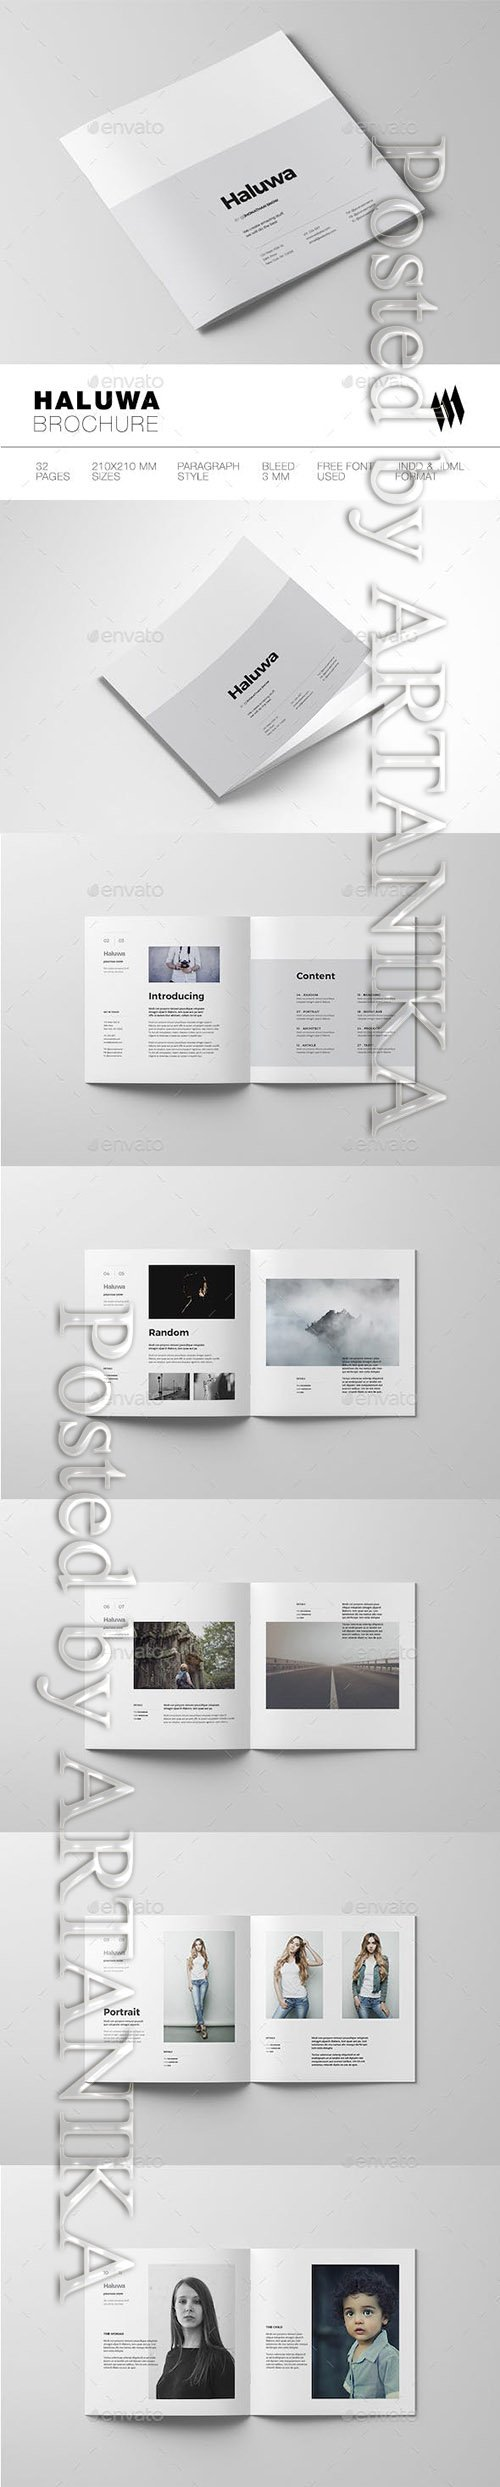 Graphicriver - Haluwa Square Brochure 19077735